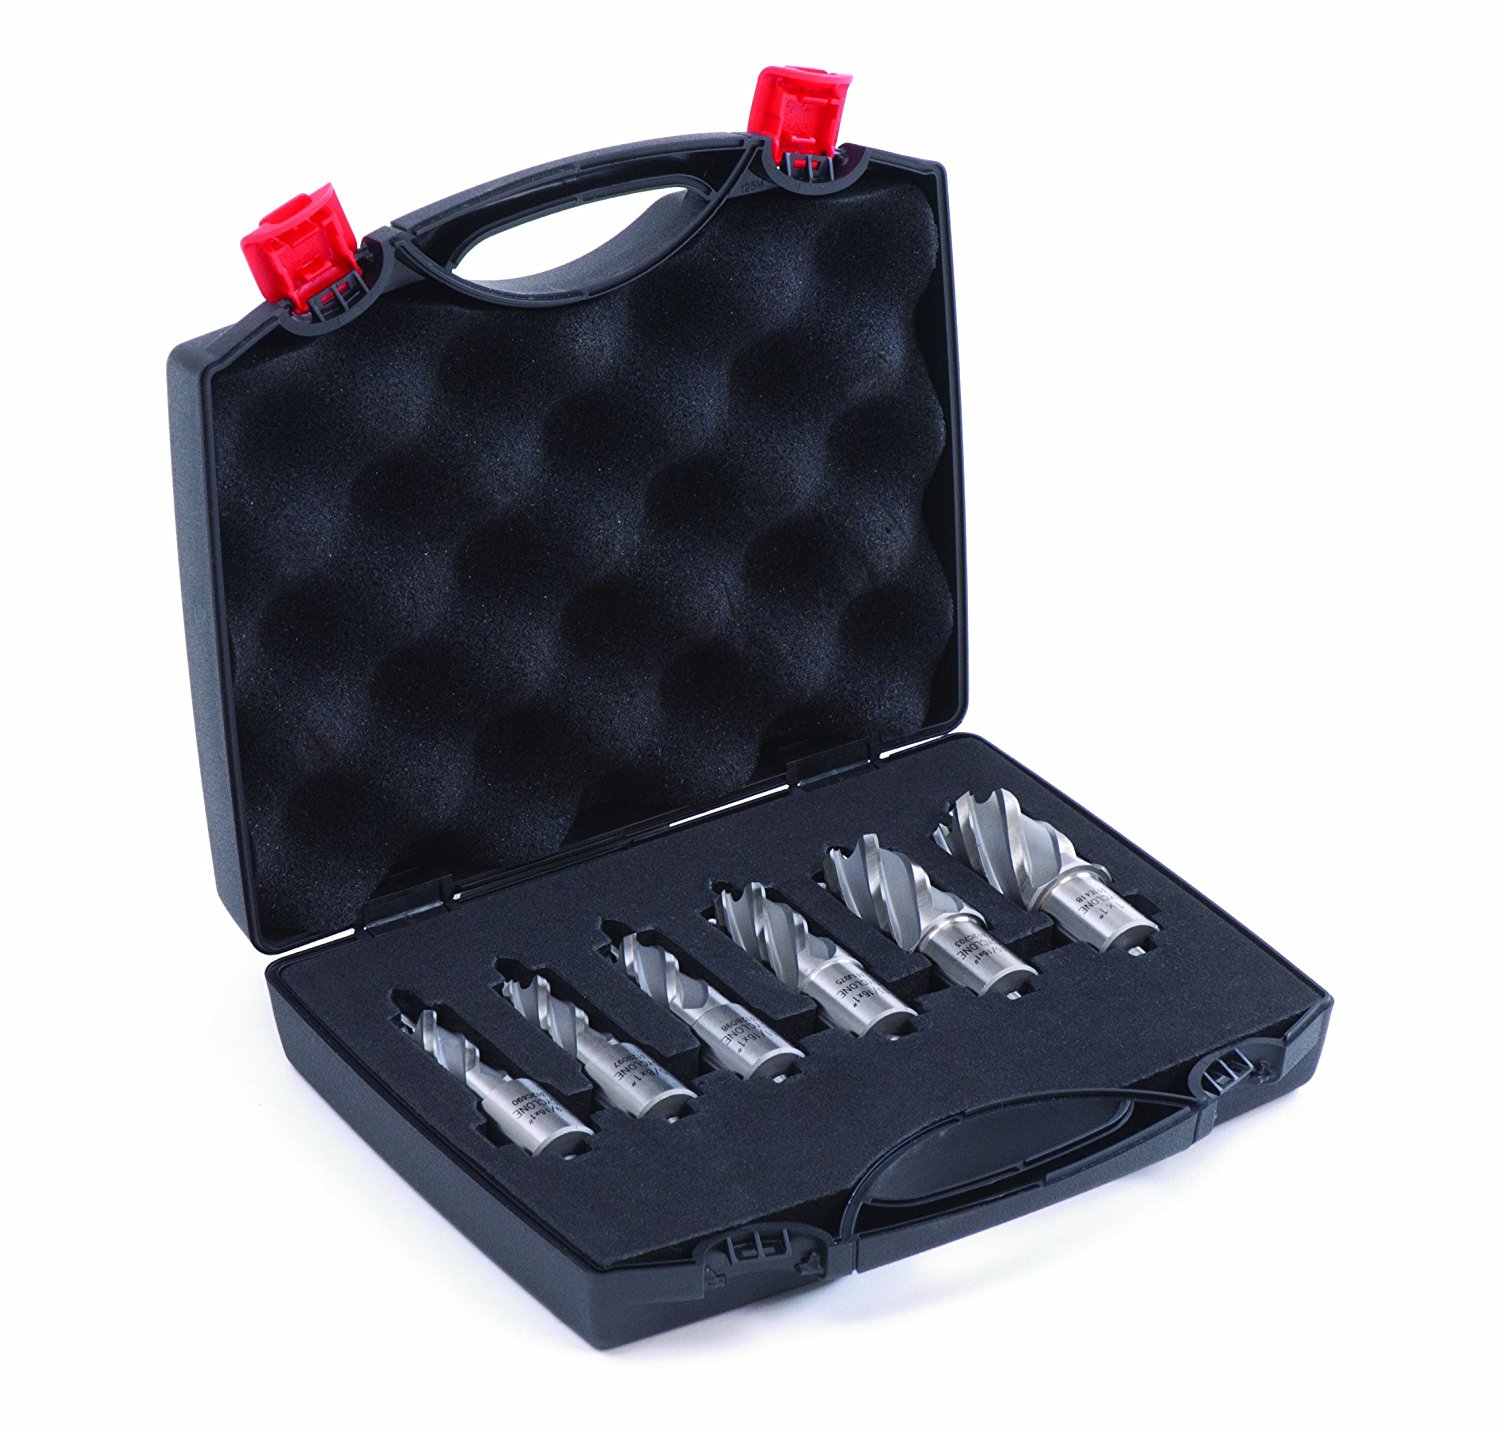 Cyclone Premium 1-Inch Annular Cutter Set With Pilot Pins